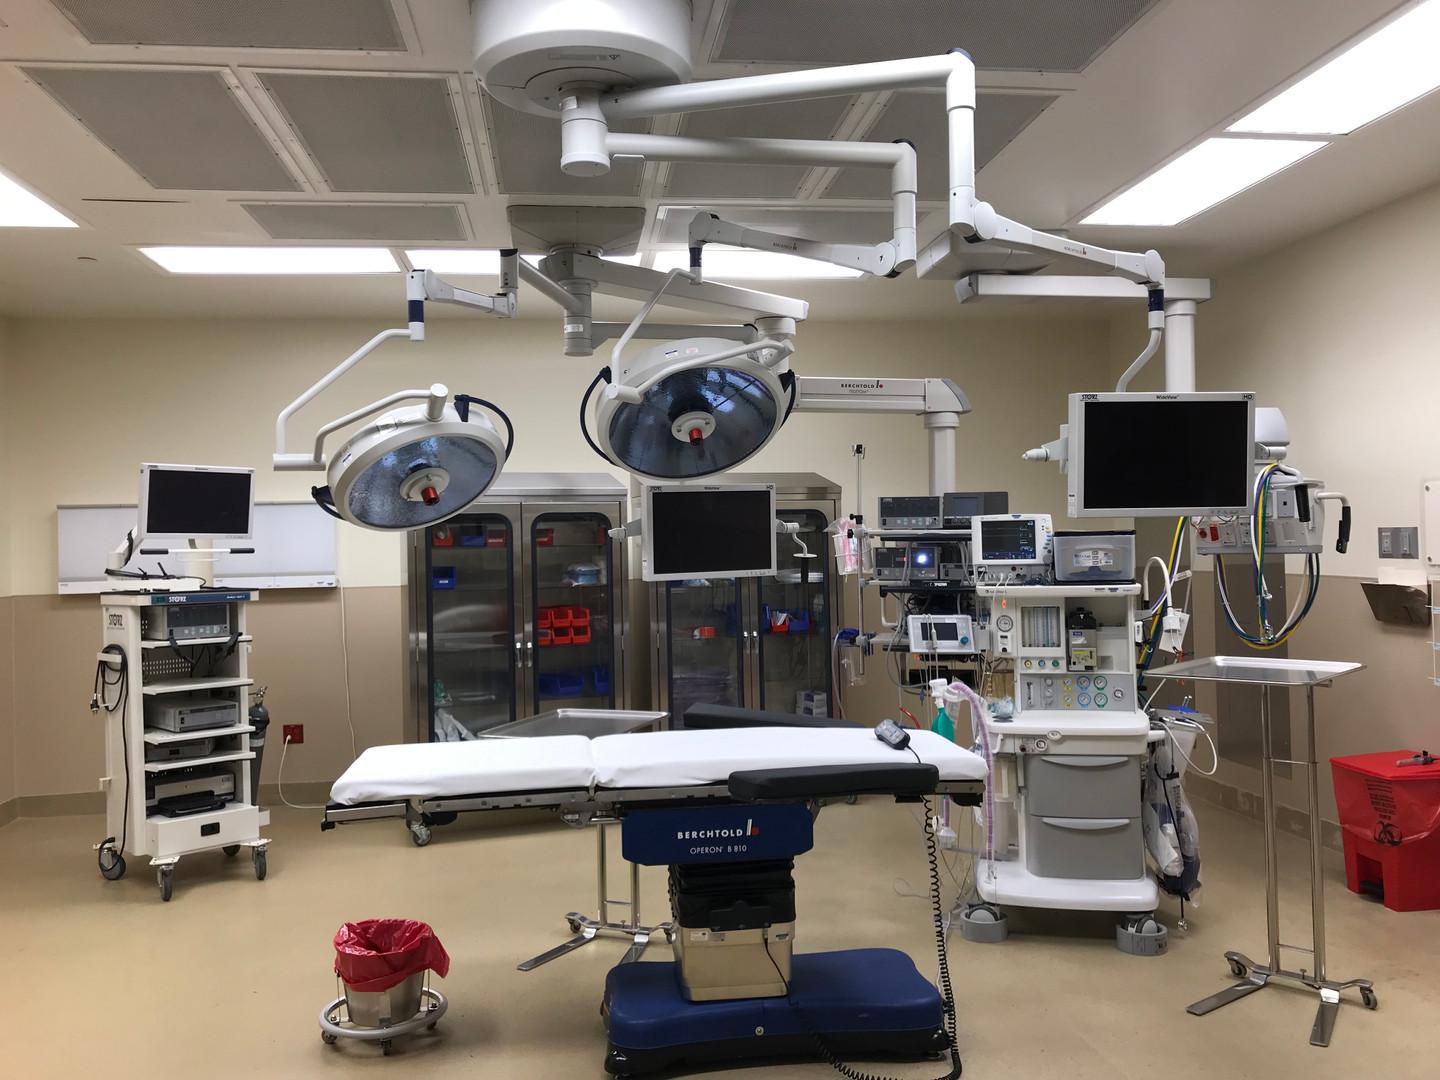 Emergency Room Equipment for Sale